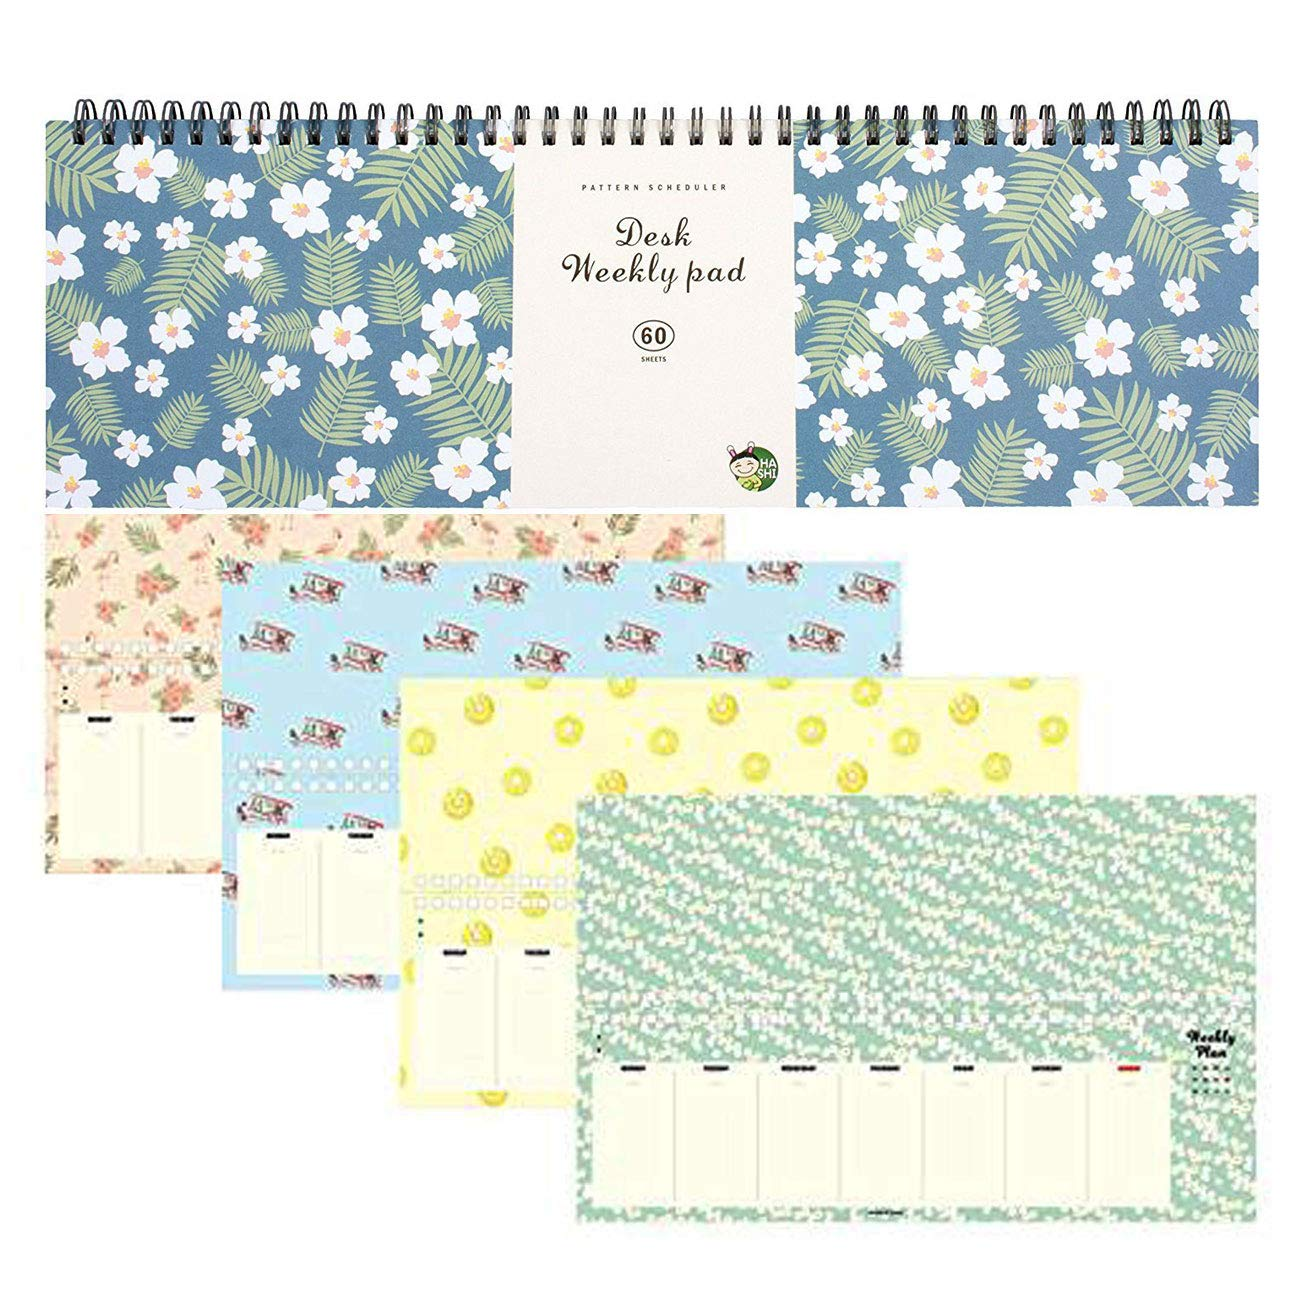 Weekly Planners Pad - Weekly and Daily Planning Keyboard Paper Pad 13inch to 4inch by Hashi